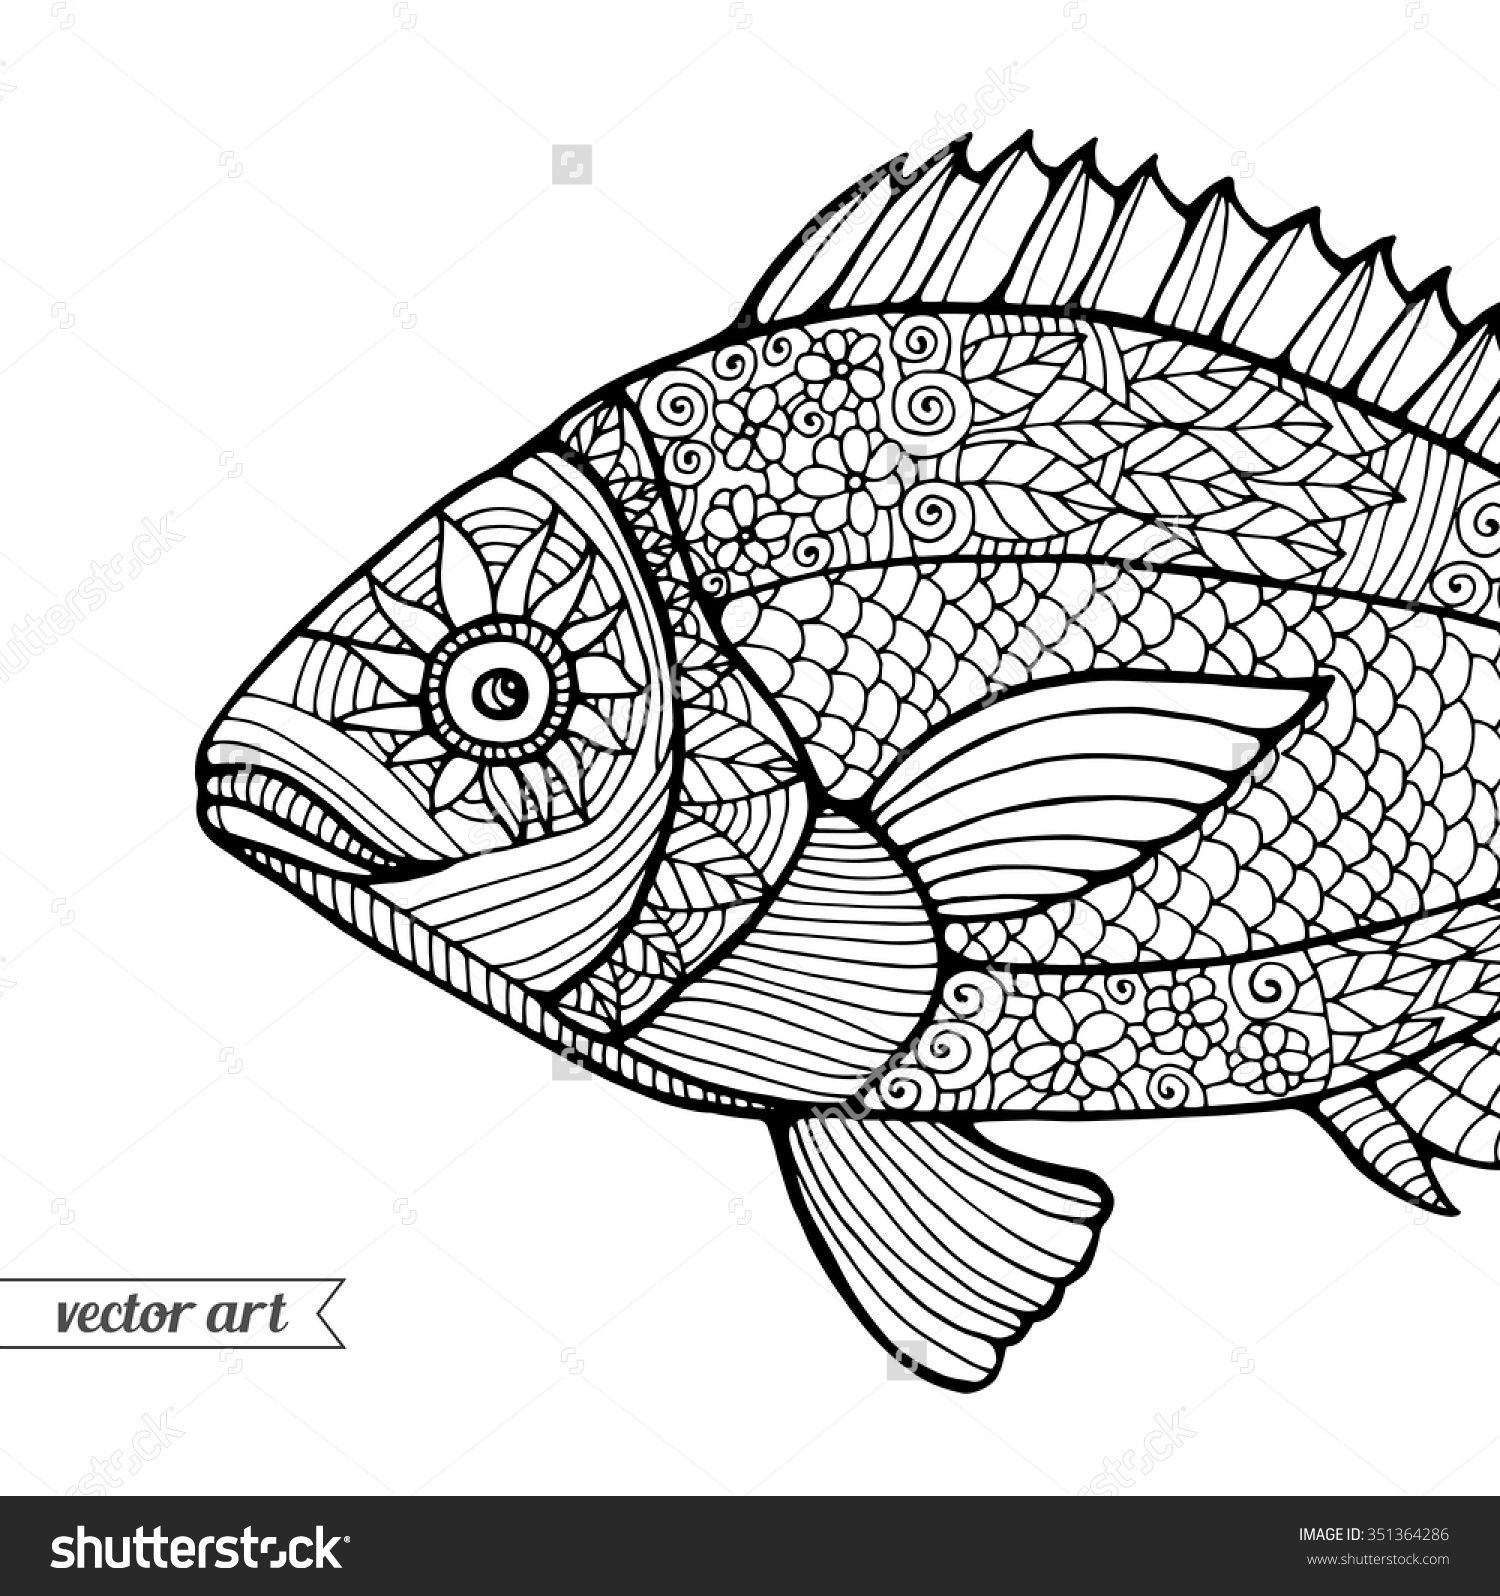 fish coloring book. fish coloring pages free printable